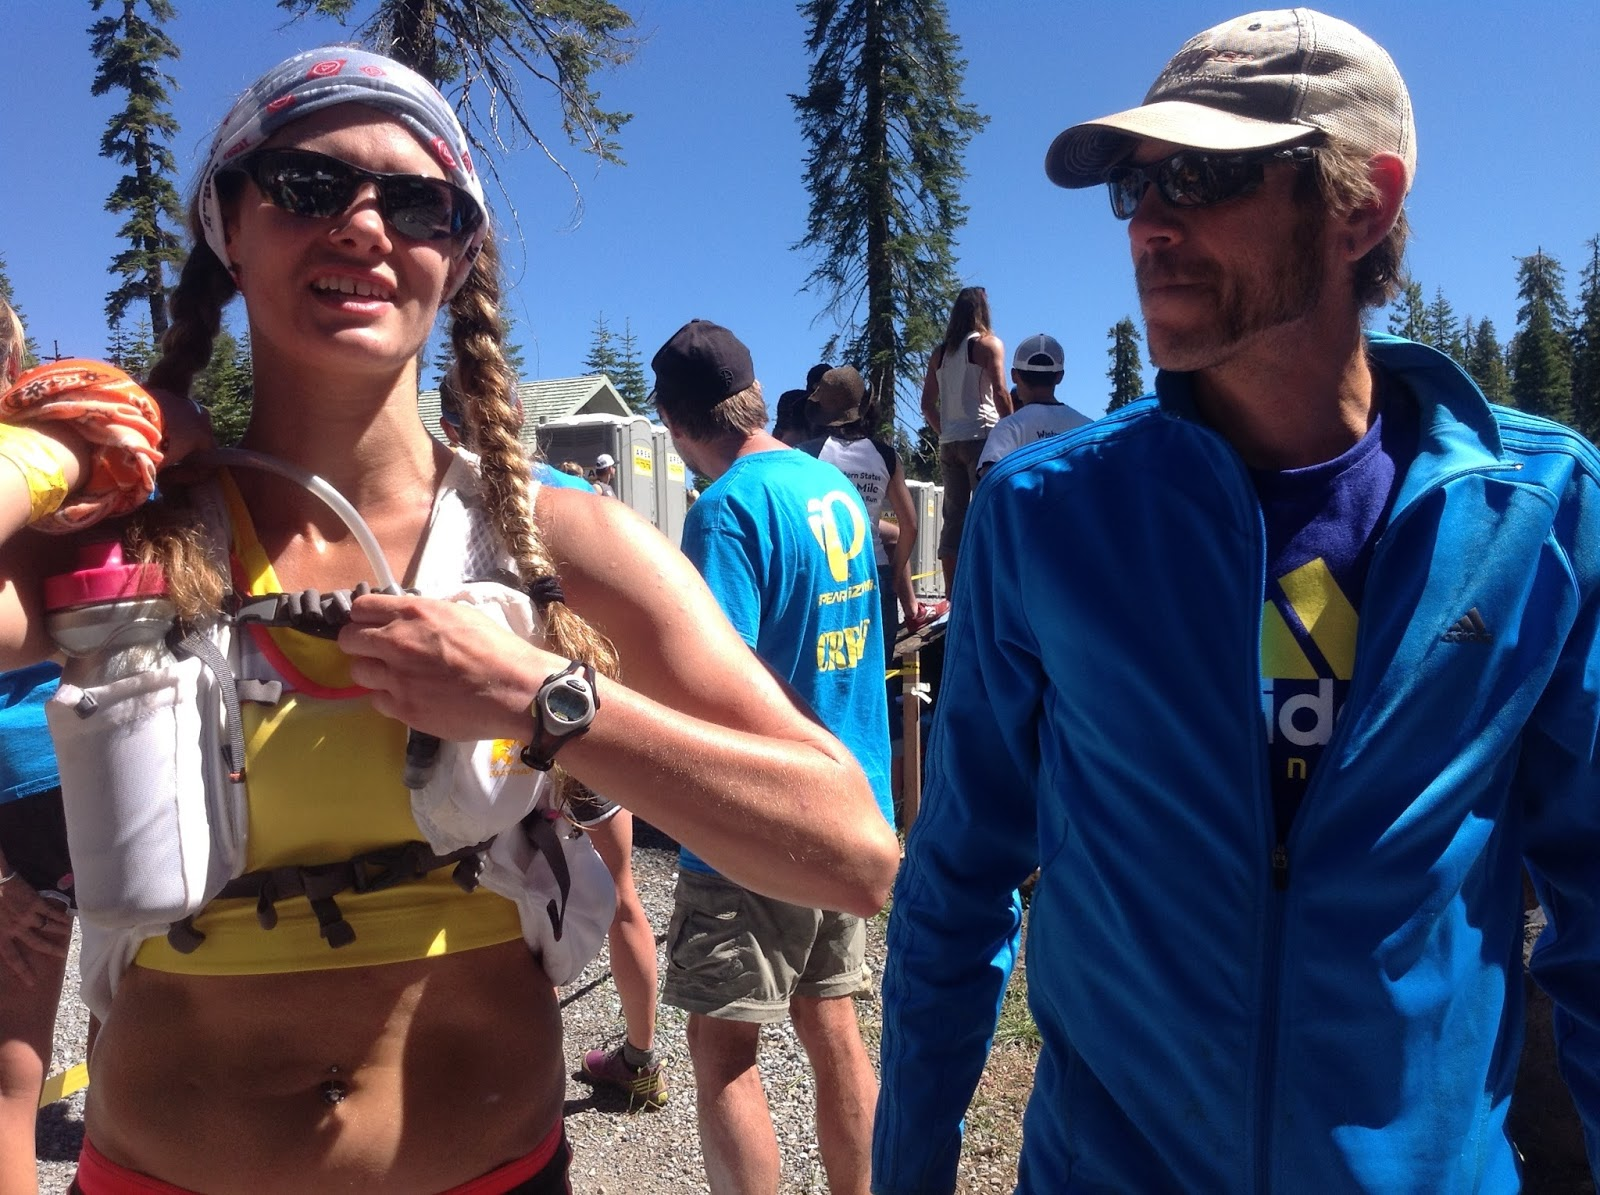 Reinventing the Run: 2013 Western States 100 Mile ...